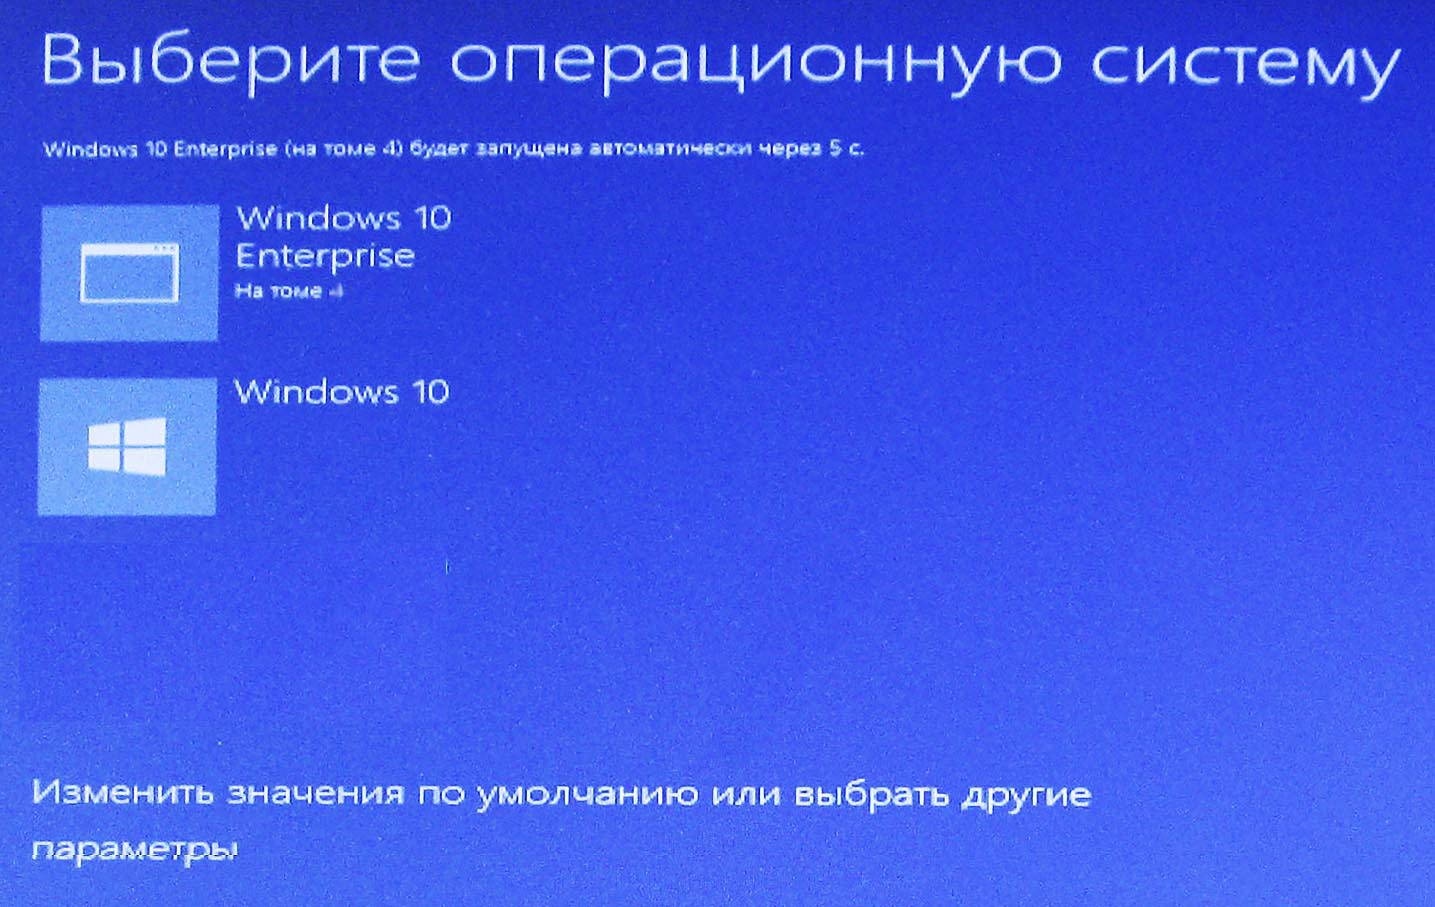 ustanovka-vtoroj-os-windows-winntsetup_09.jpg